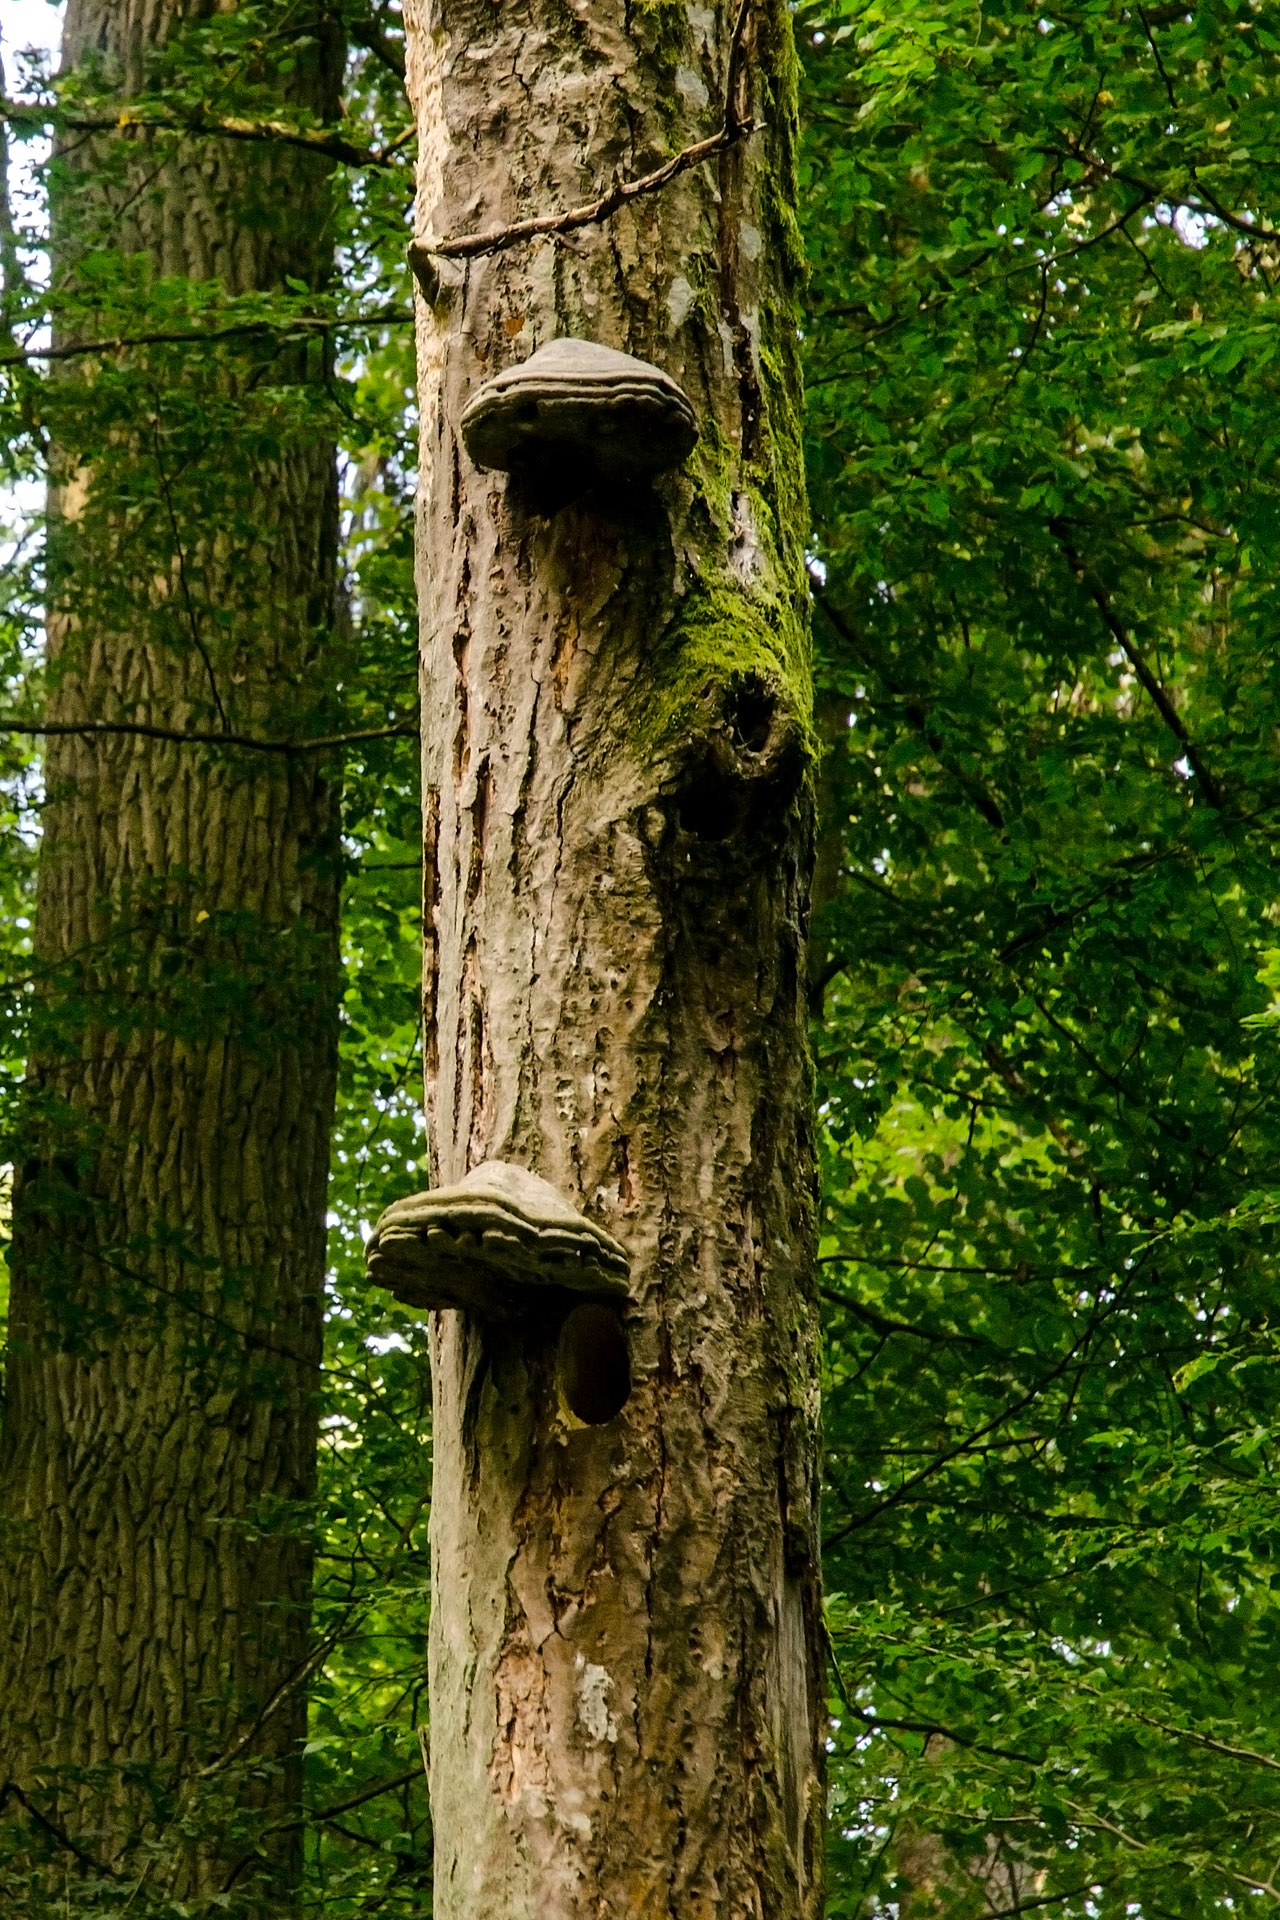 Woodpecker home with a shelf mushroom awning